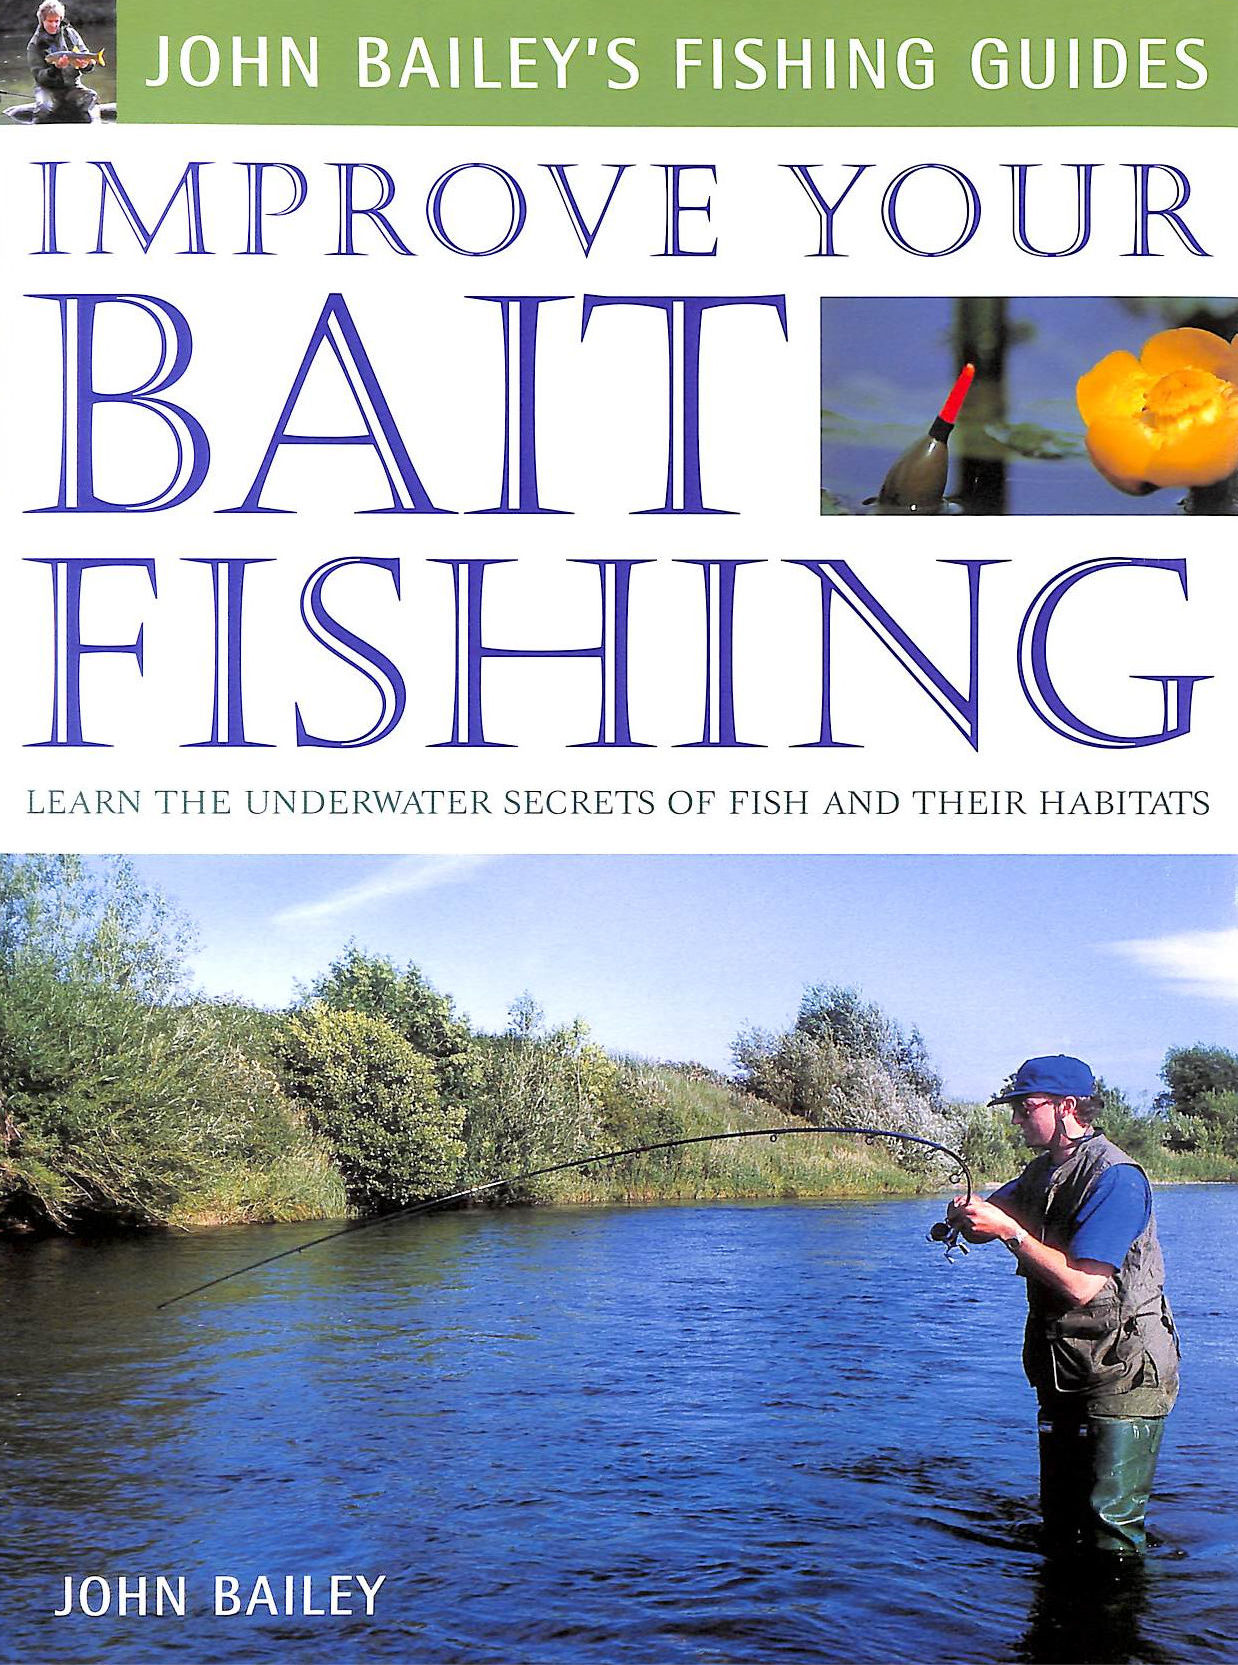 Image for Improve Your Bait Fishing: Learn The Underwater Secrets Of Fish Behaviour And Habitats (John Bailey'S Fishing Guides)